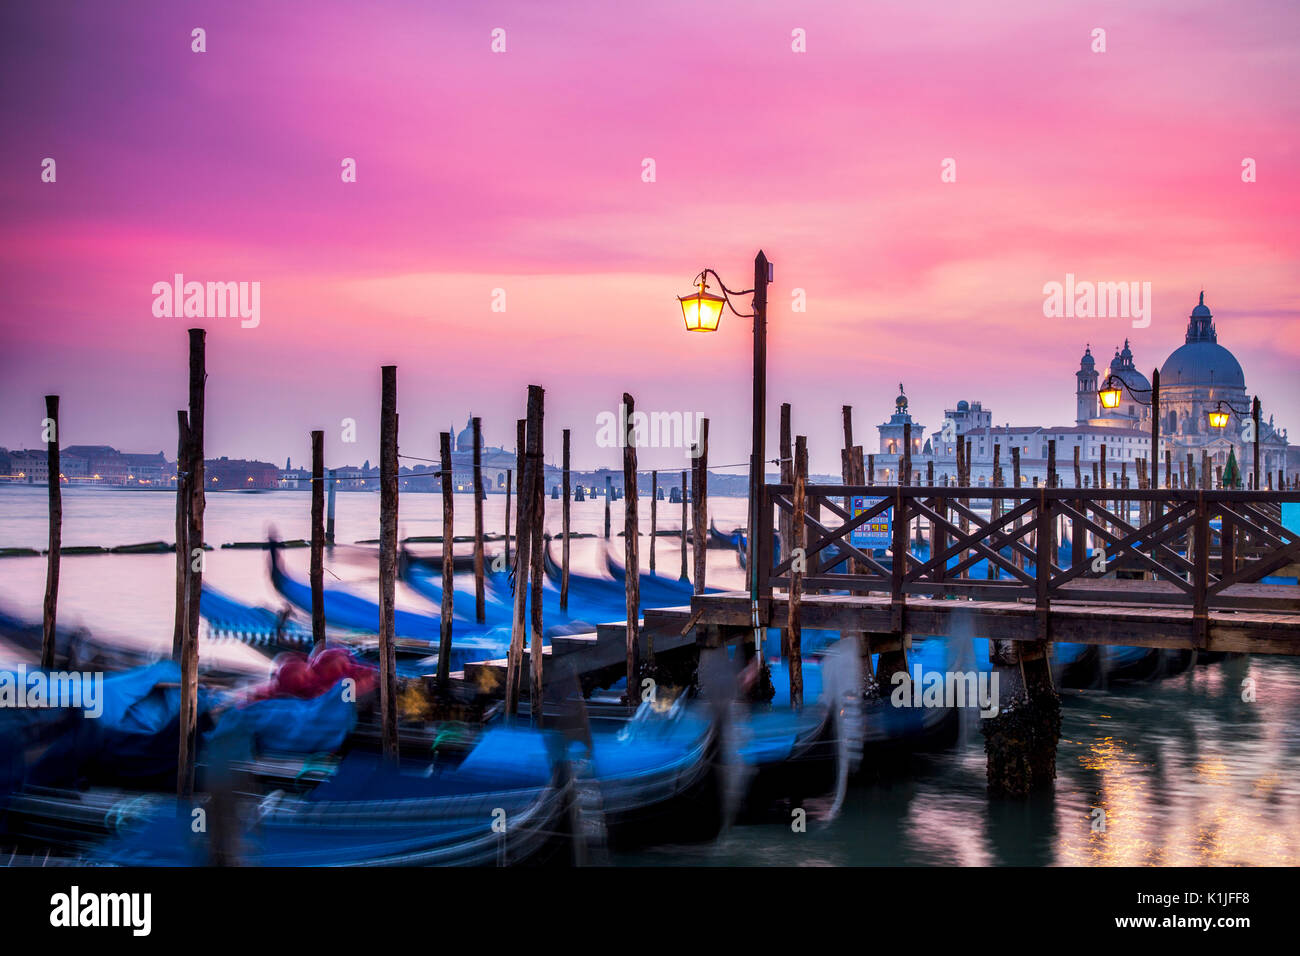 Sunset over the gondolas of Venice, Italy at St. Mark's Square. - Stock Image